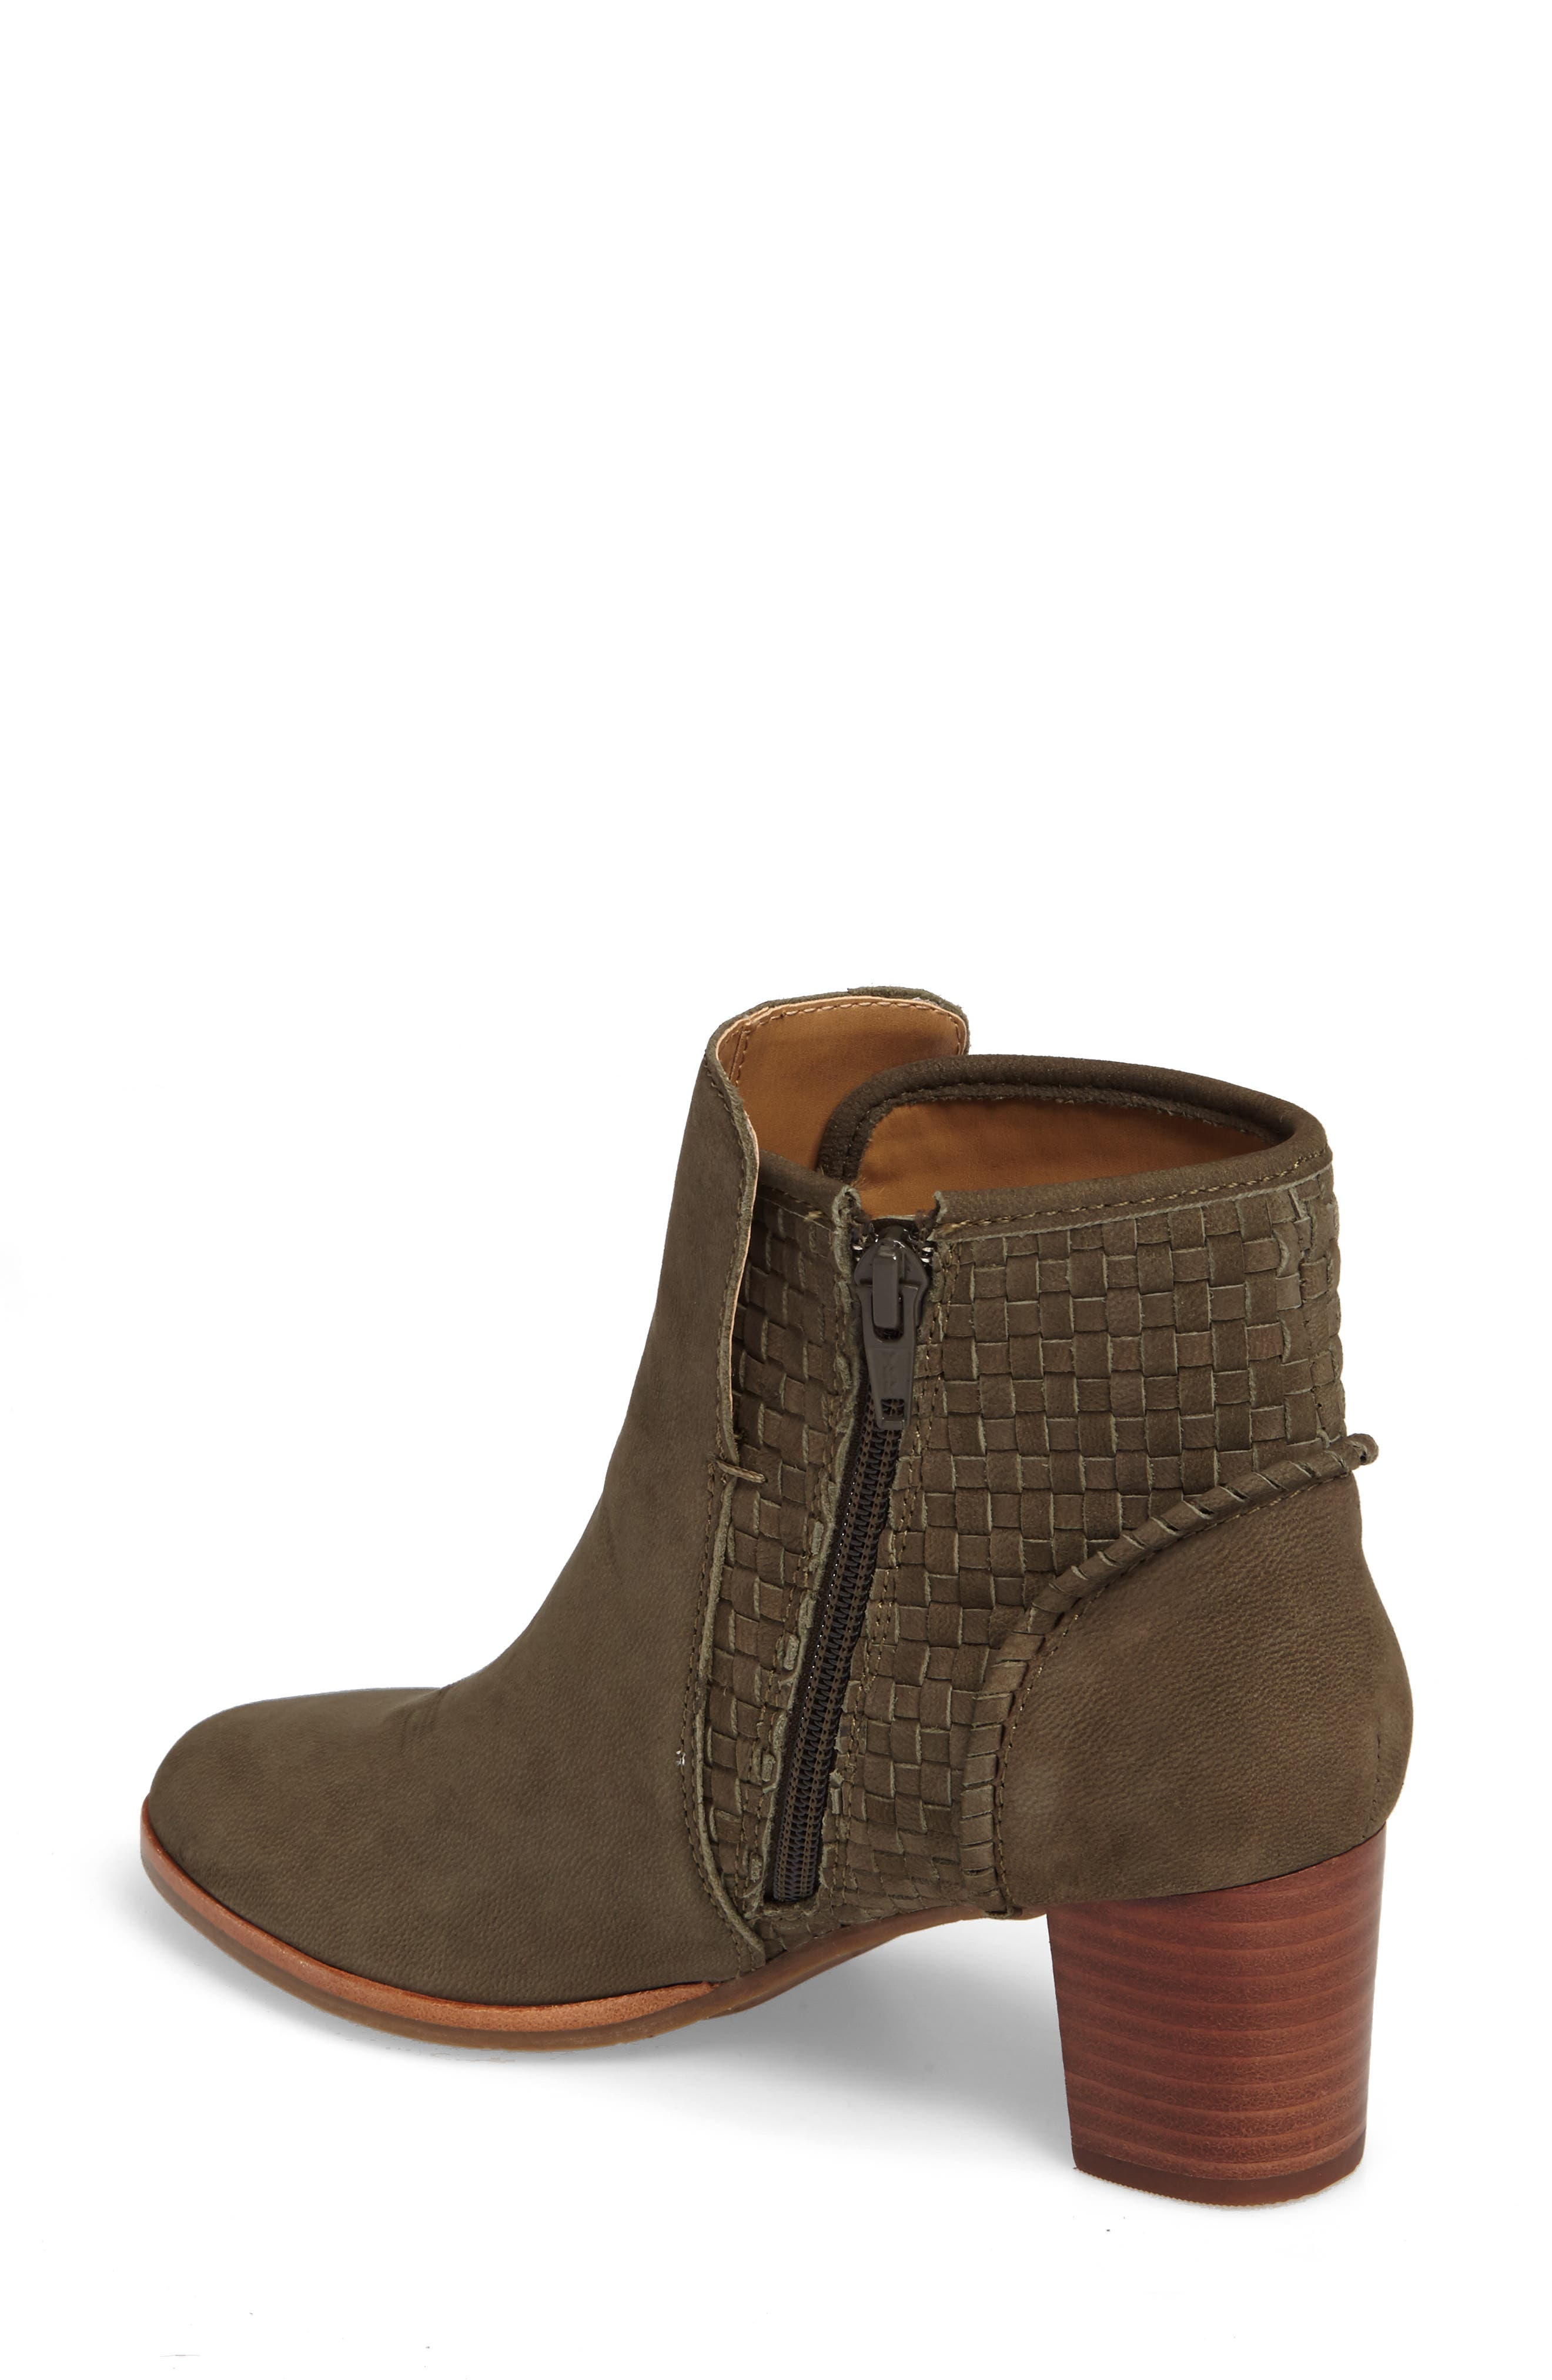 Deborah Bootie,                             Alternate thumbnail 2, color,                             Olive Leather